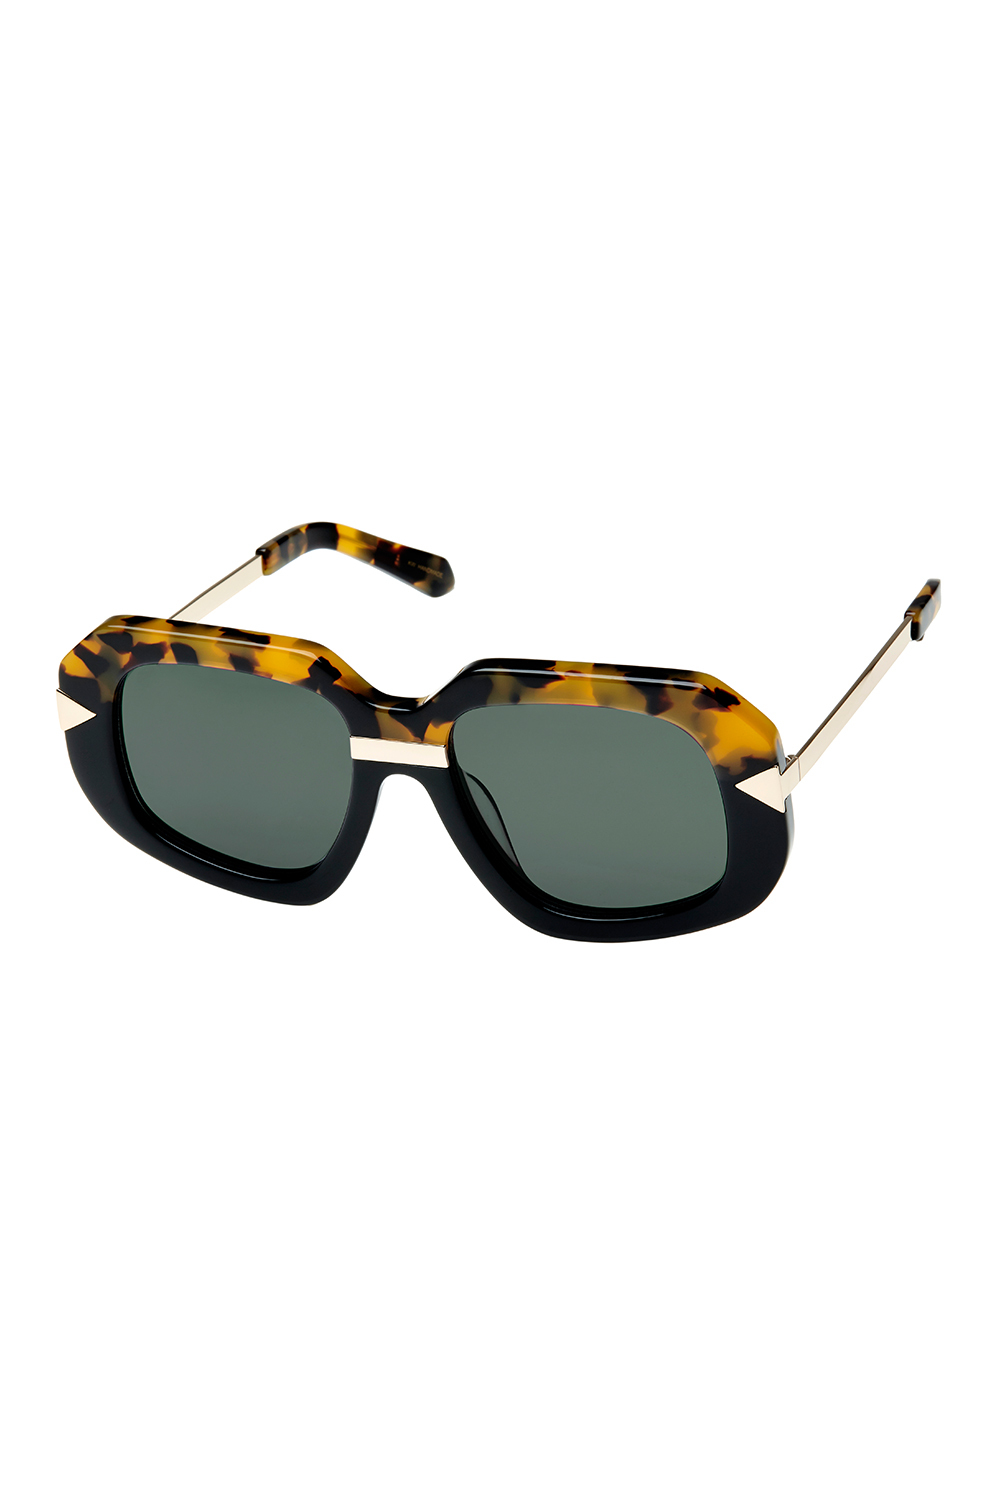 401ba0050e Karen Walker Hollywood Creeper Square Sunglasses Crazy Toroise Brown Black  Gold